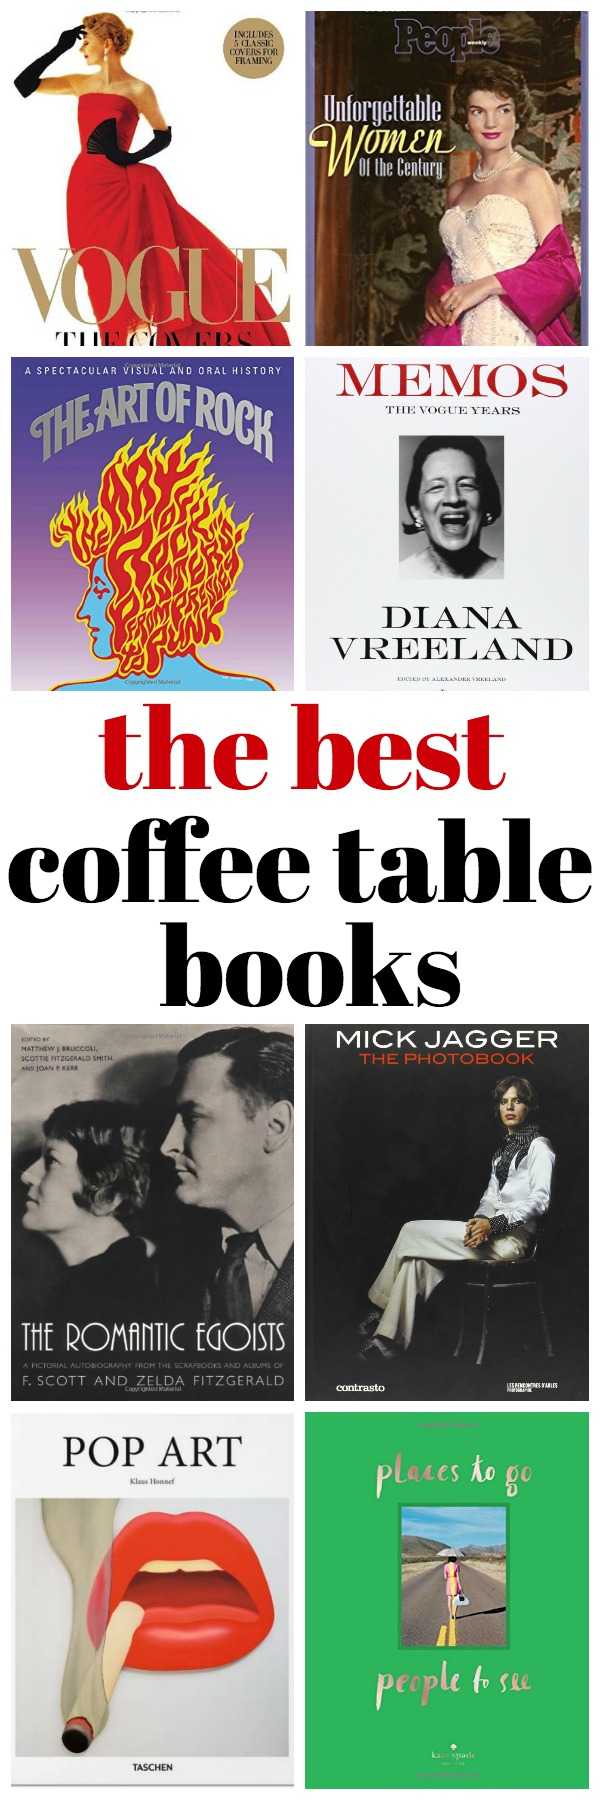 Best Coffee Table Books | Coffee Table Photo Book | Great Coffee Table Books | Coffee Table Books Decor | Coffee Table Decor